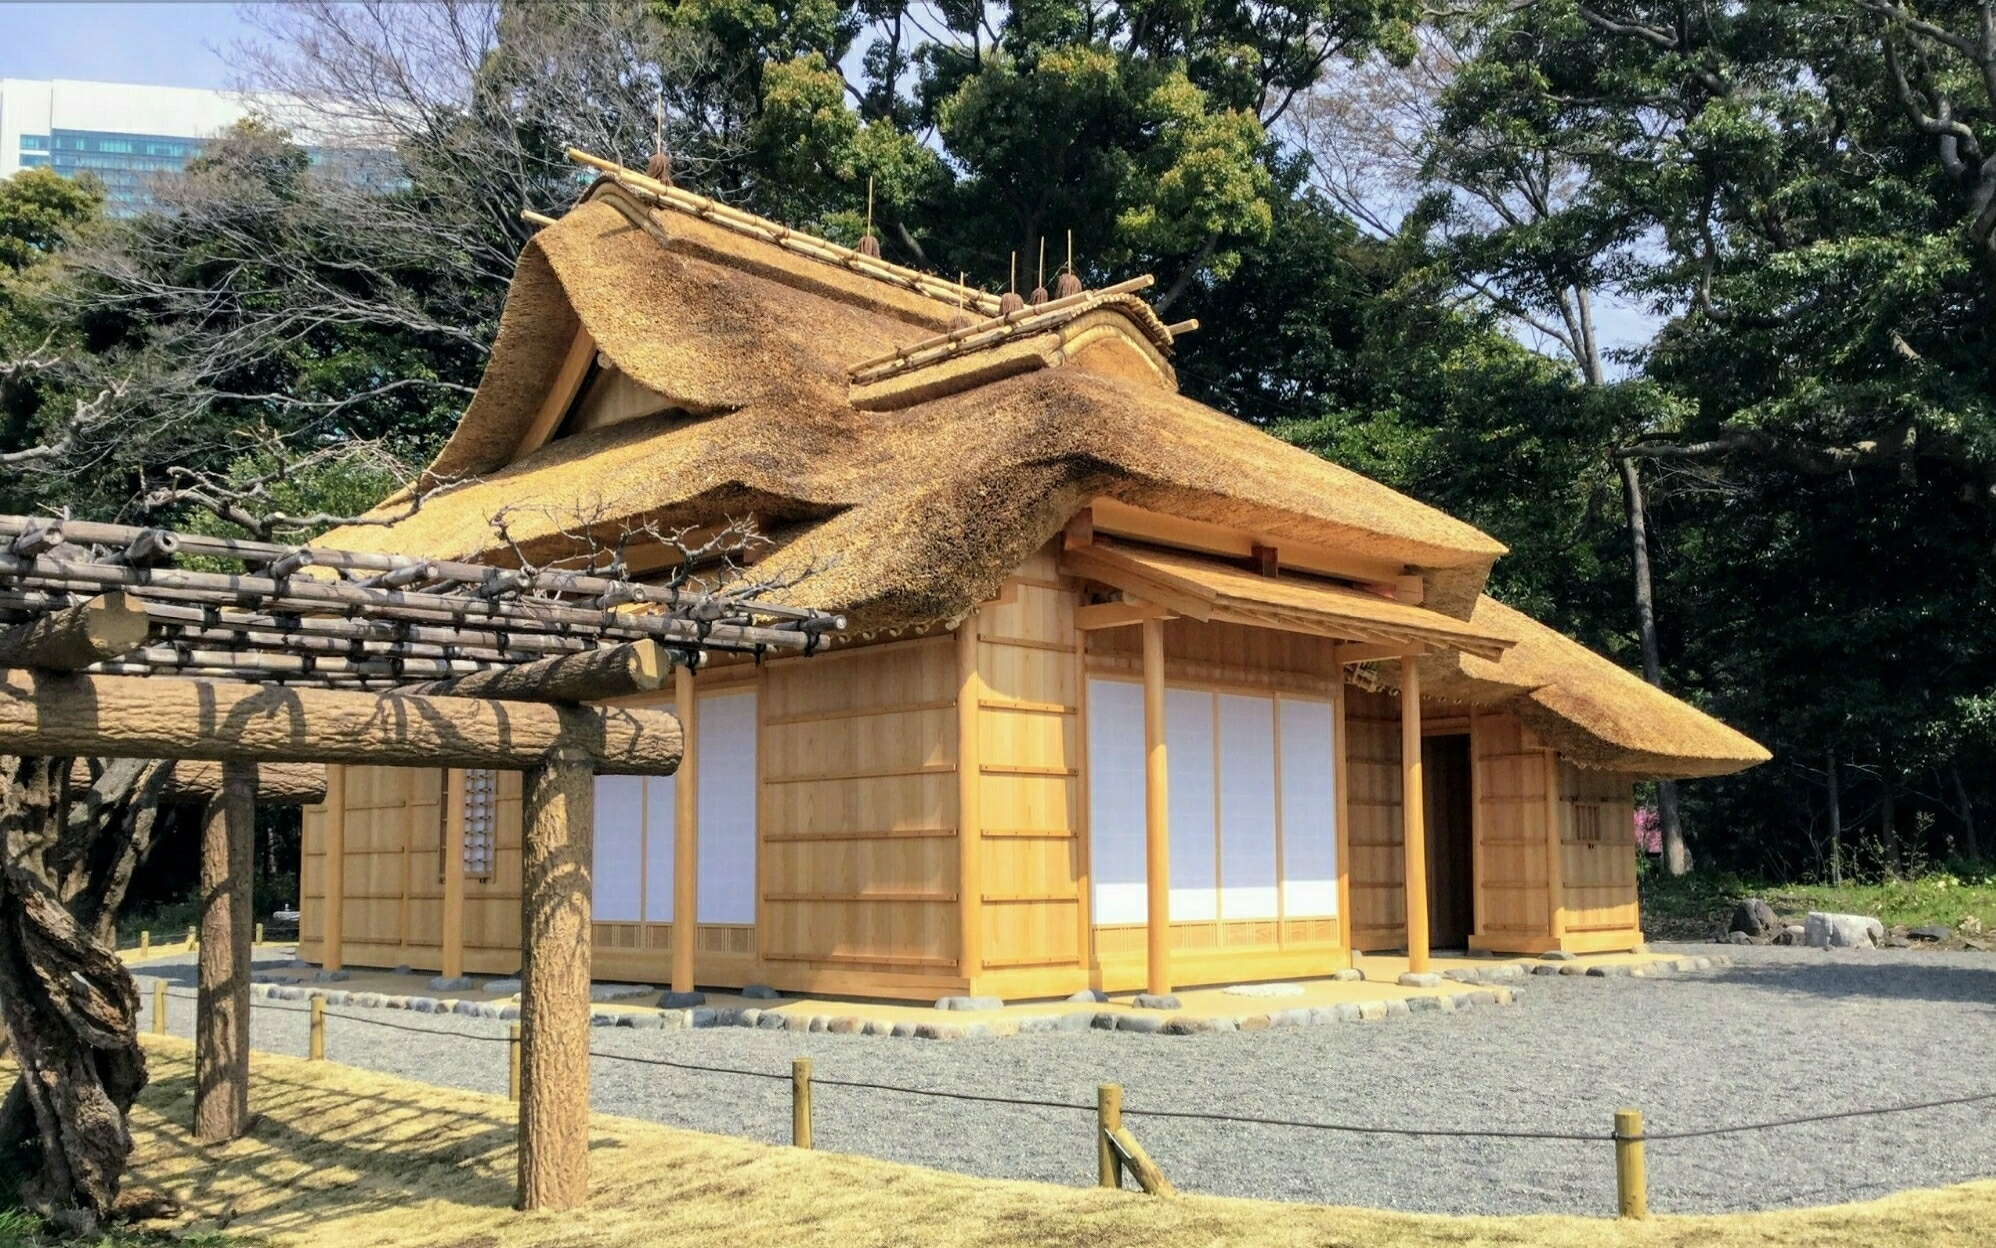 Hawk Teahouse in the garden